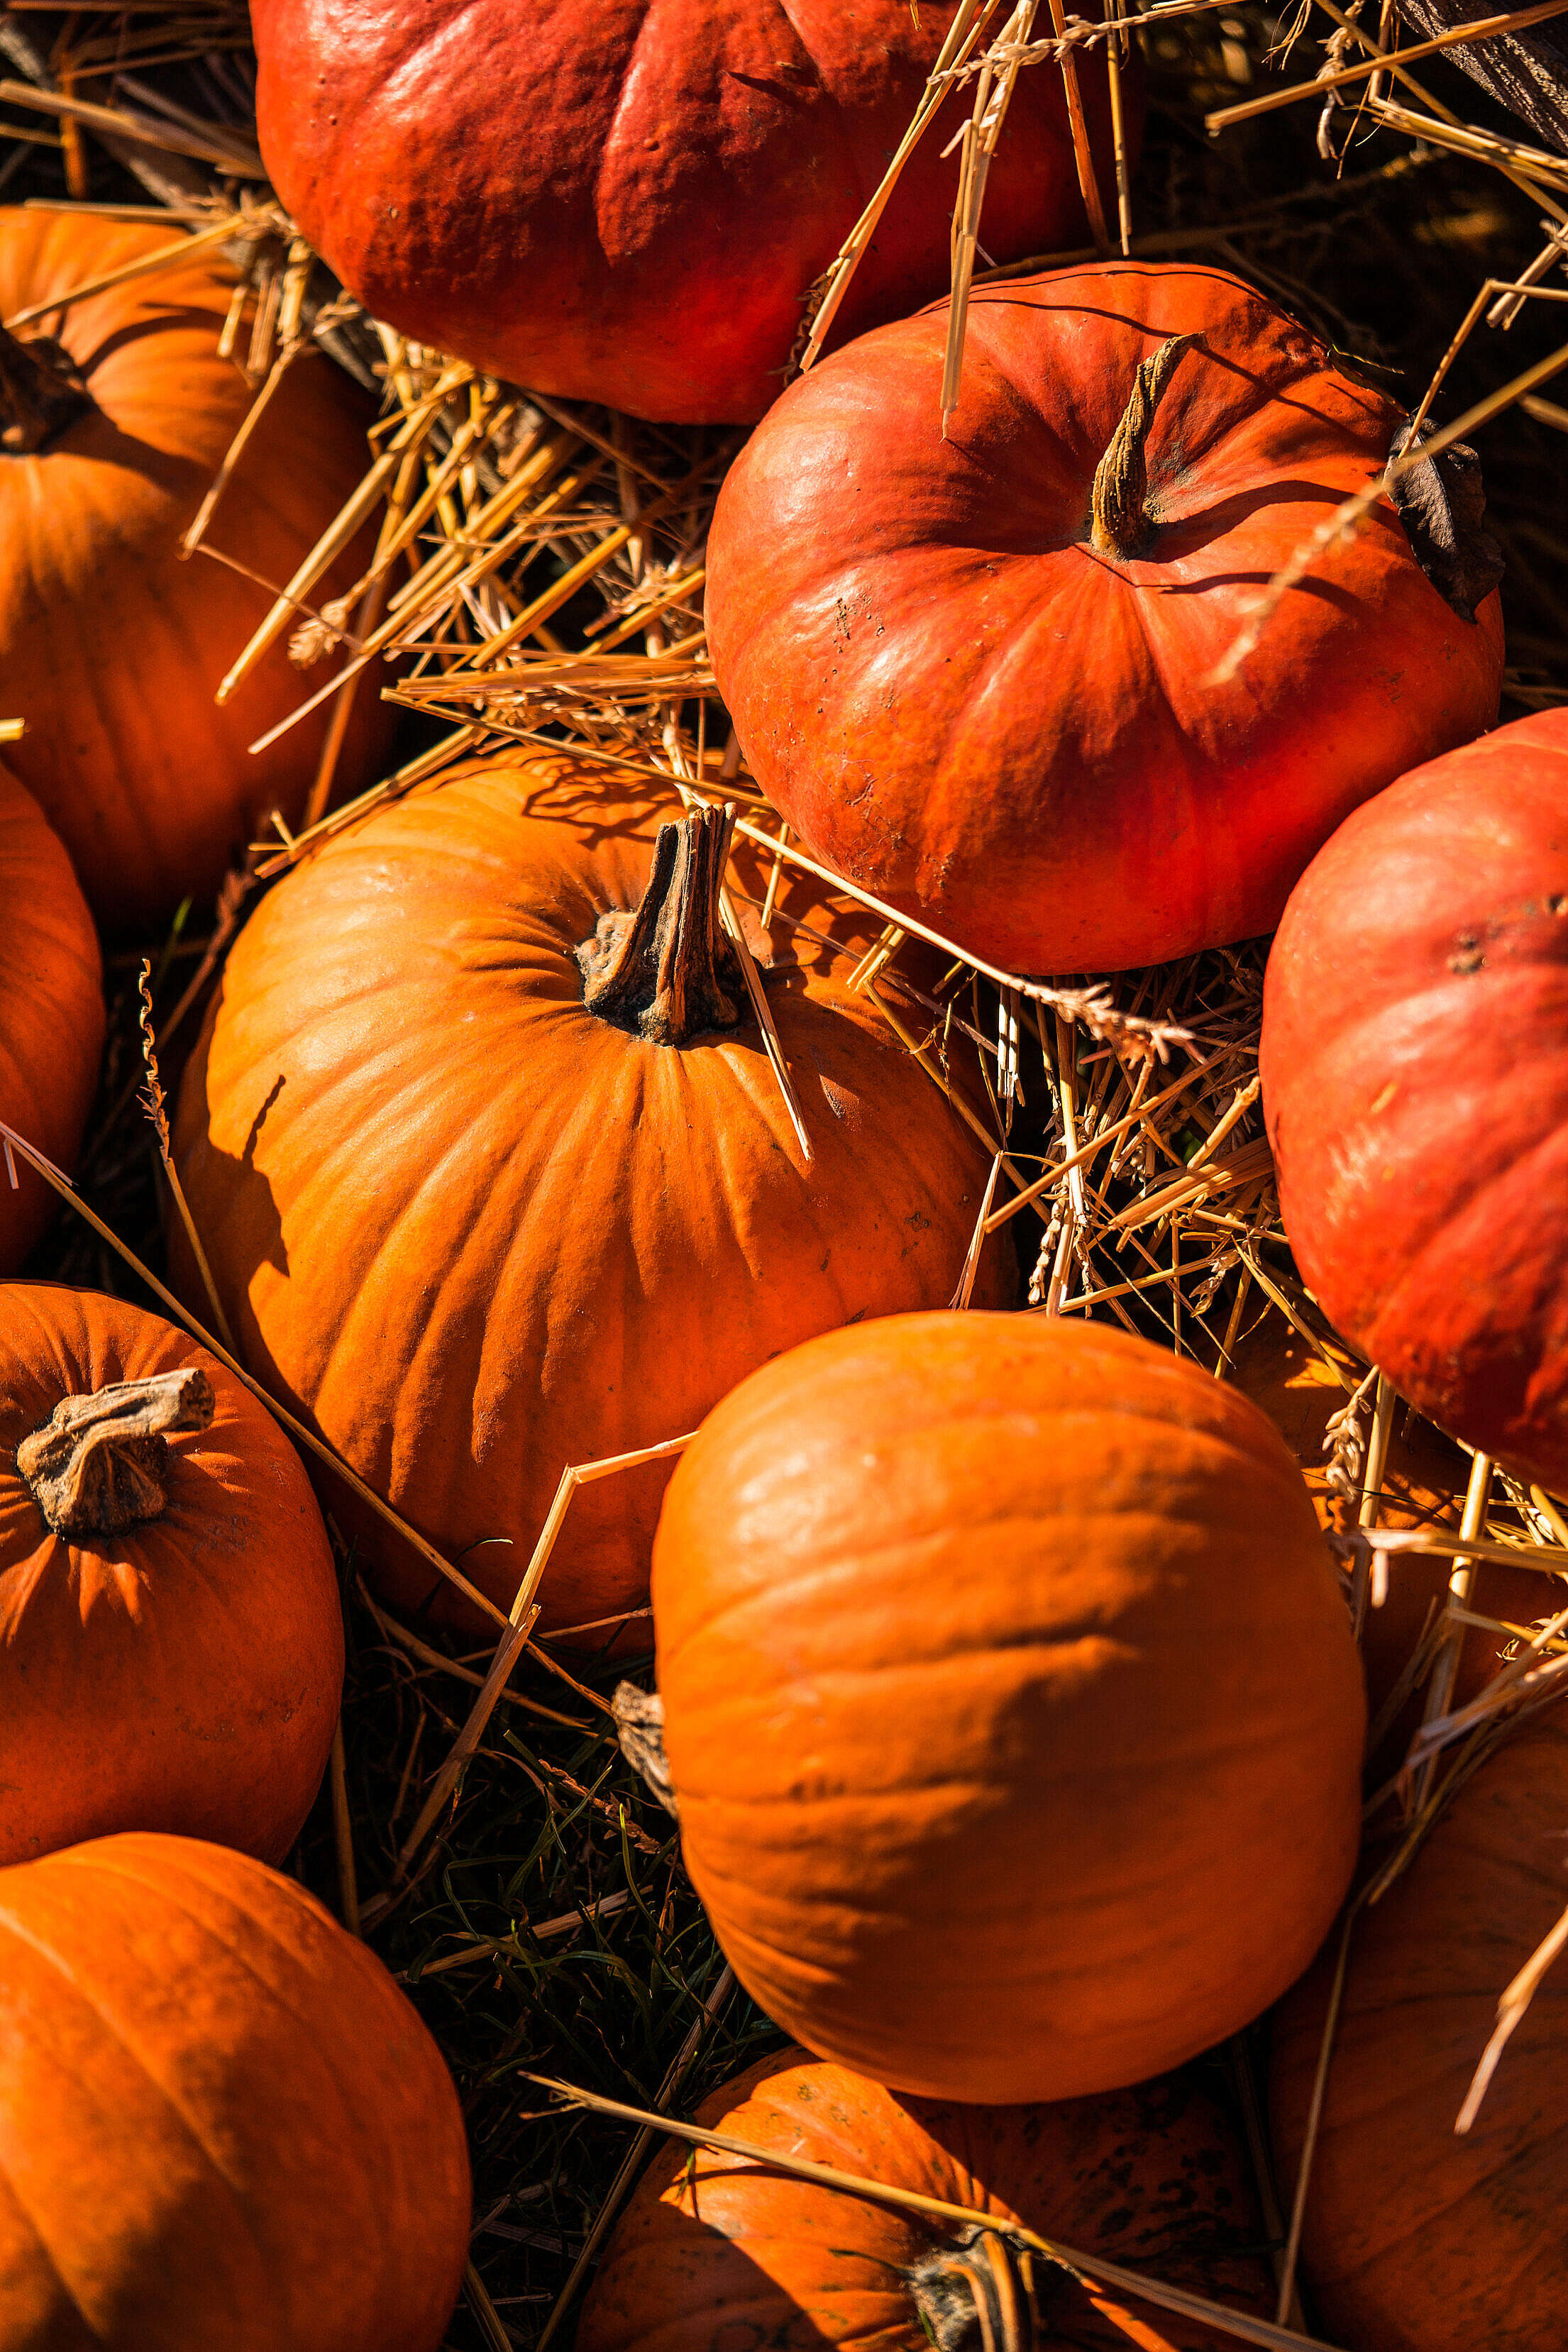 Pumpkins on The Straw Free Stock Photo